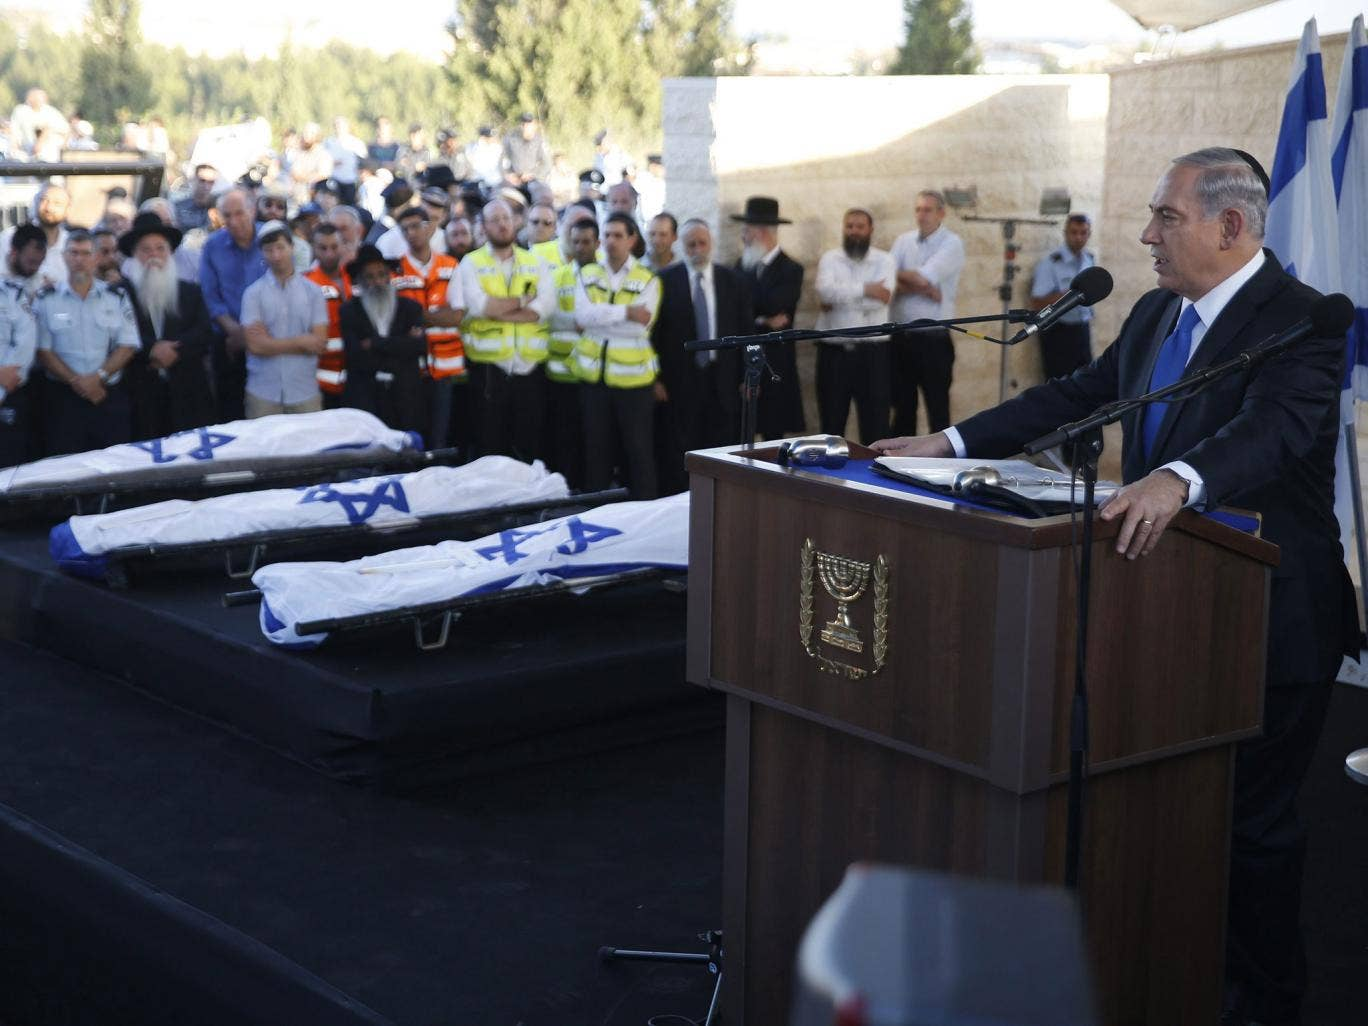 sraeli Prime Minister Benjamin Netanyahu (R) eulogizes three Israeli teens who were abducted and killed in the occupied West Bank, Gil-Ad Shaer, US-Israeli national Naftali Fraenkel, both 16, and Eyal Yifrah, 19, during their joint funeral in the Israeli